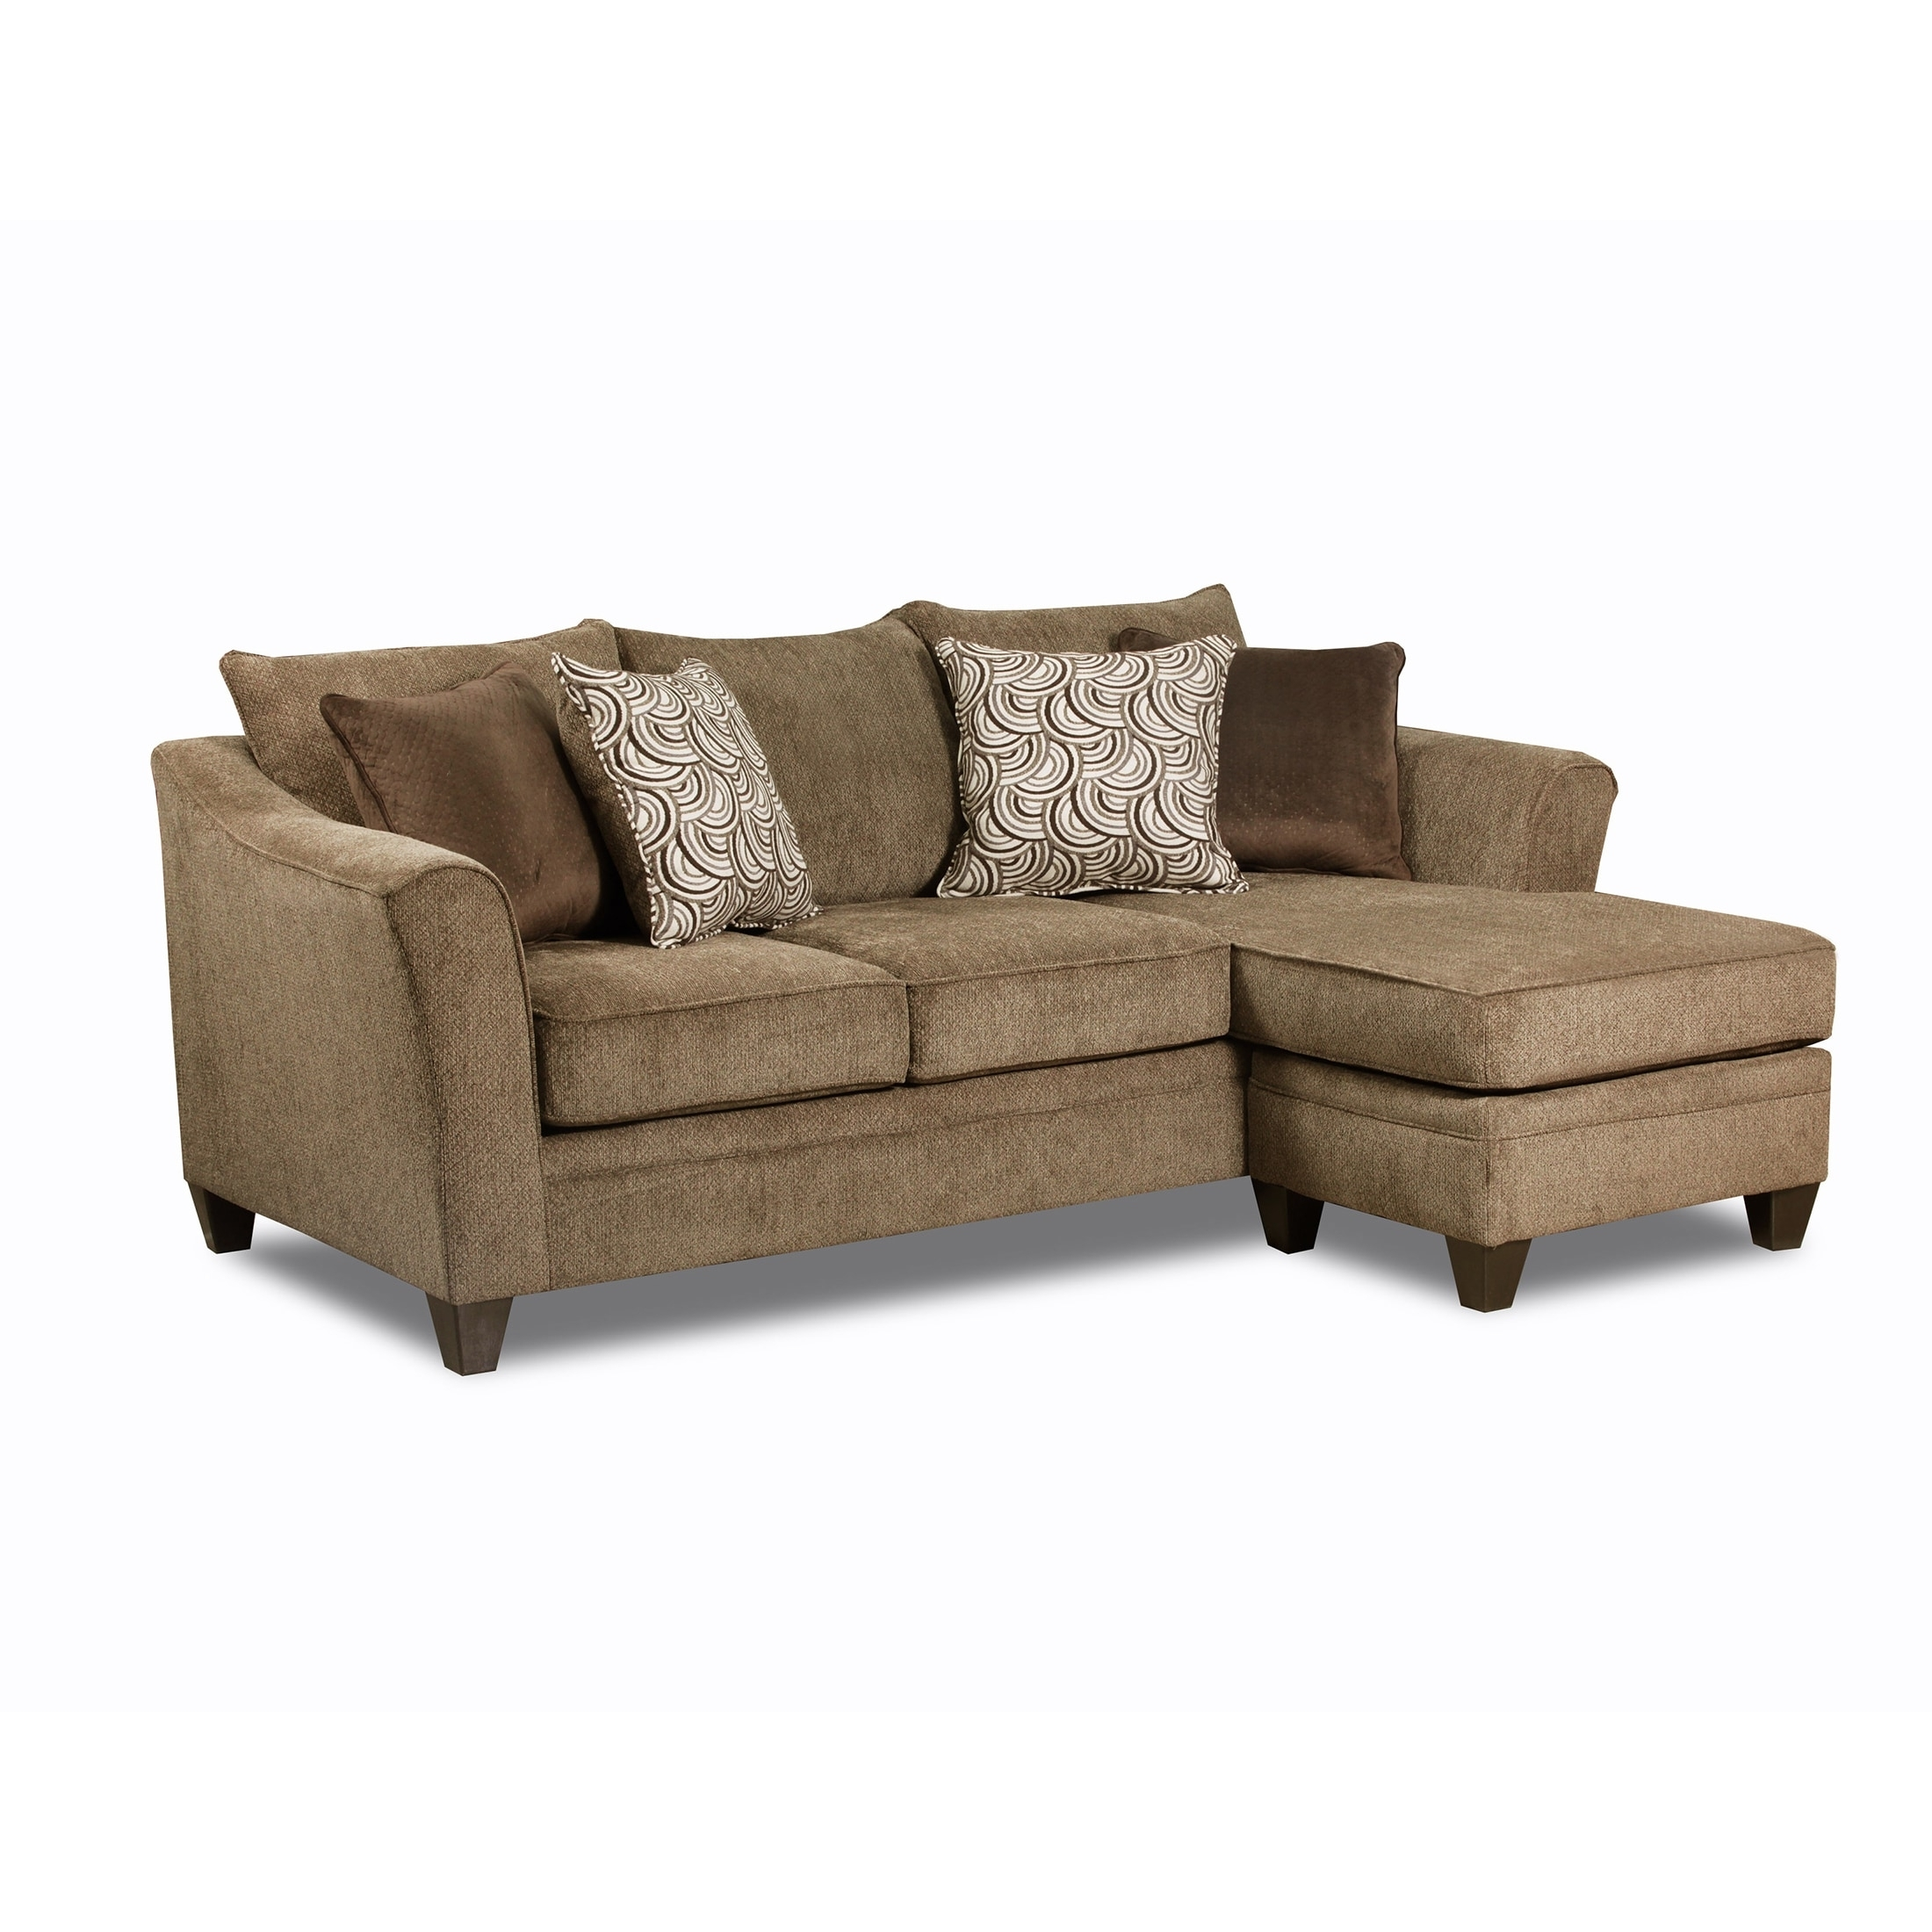 Simmons Upholstery Albany Truffle Sofa Chaise - Free Shipping Today throughout Simmons Chaise Sofas (Image 10 of 10)